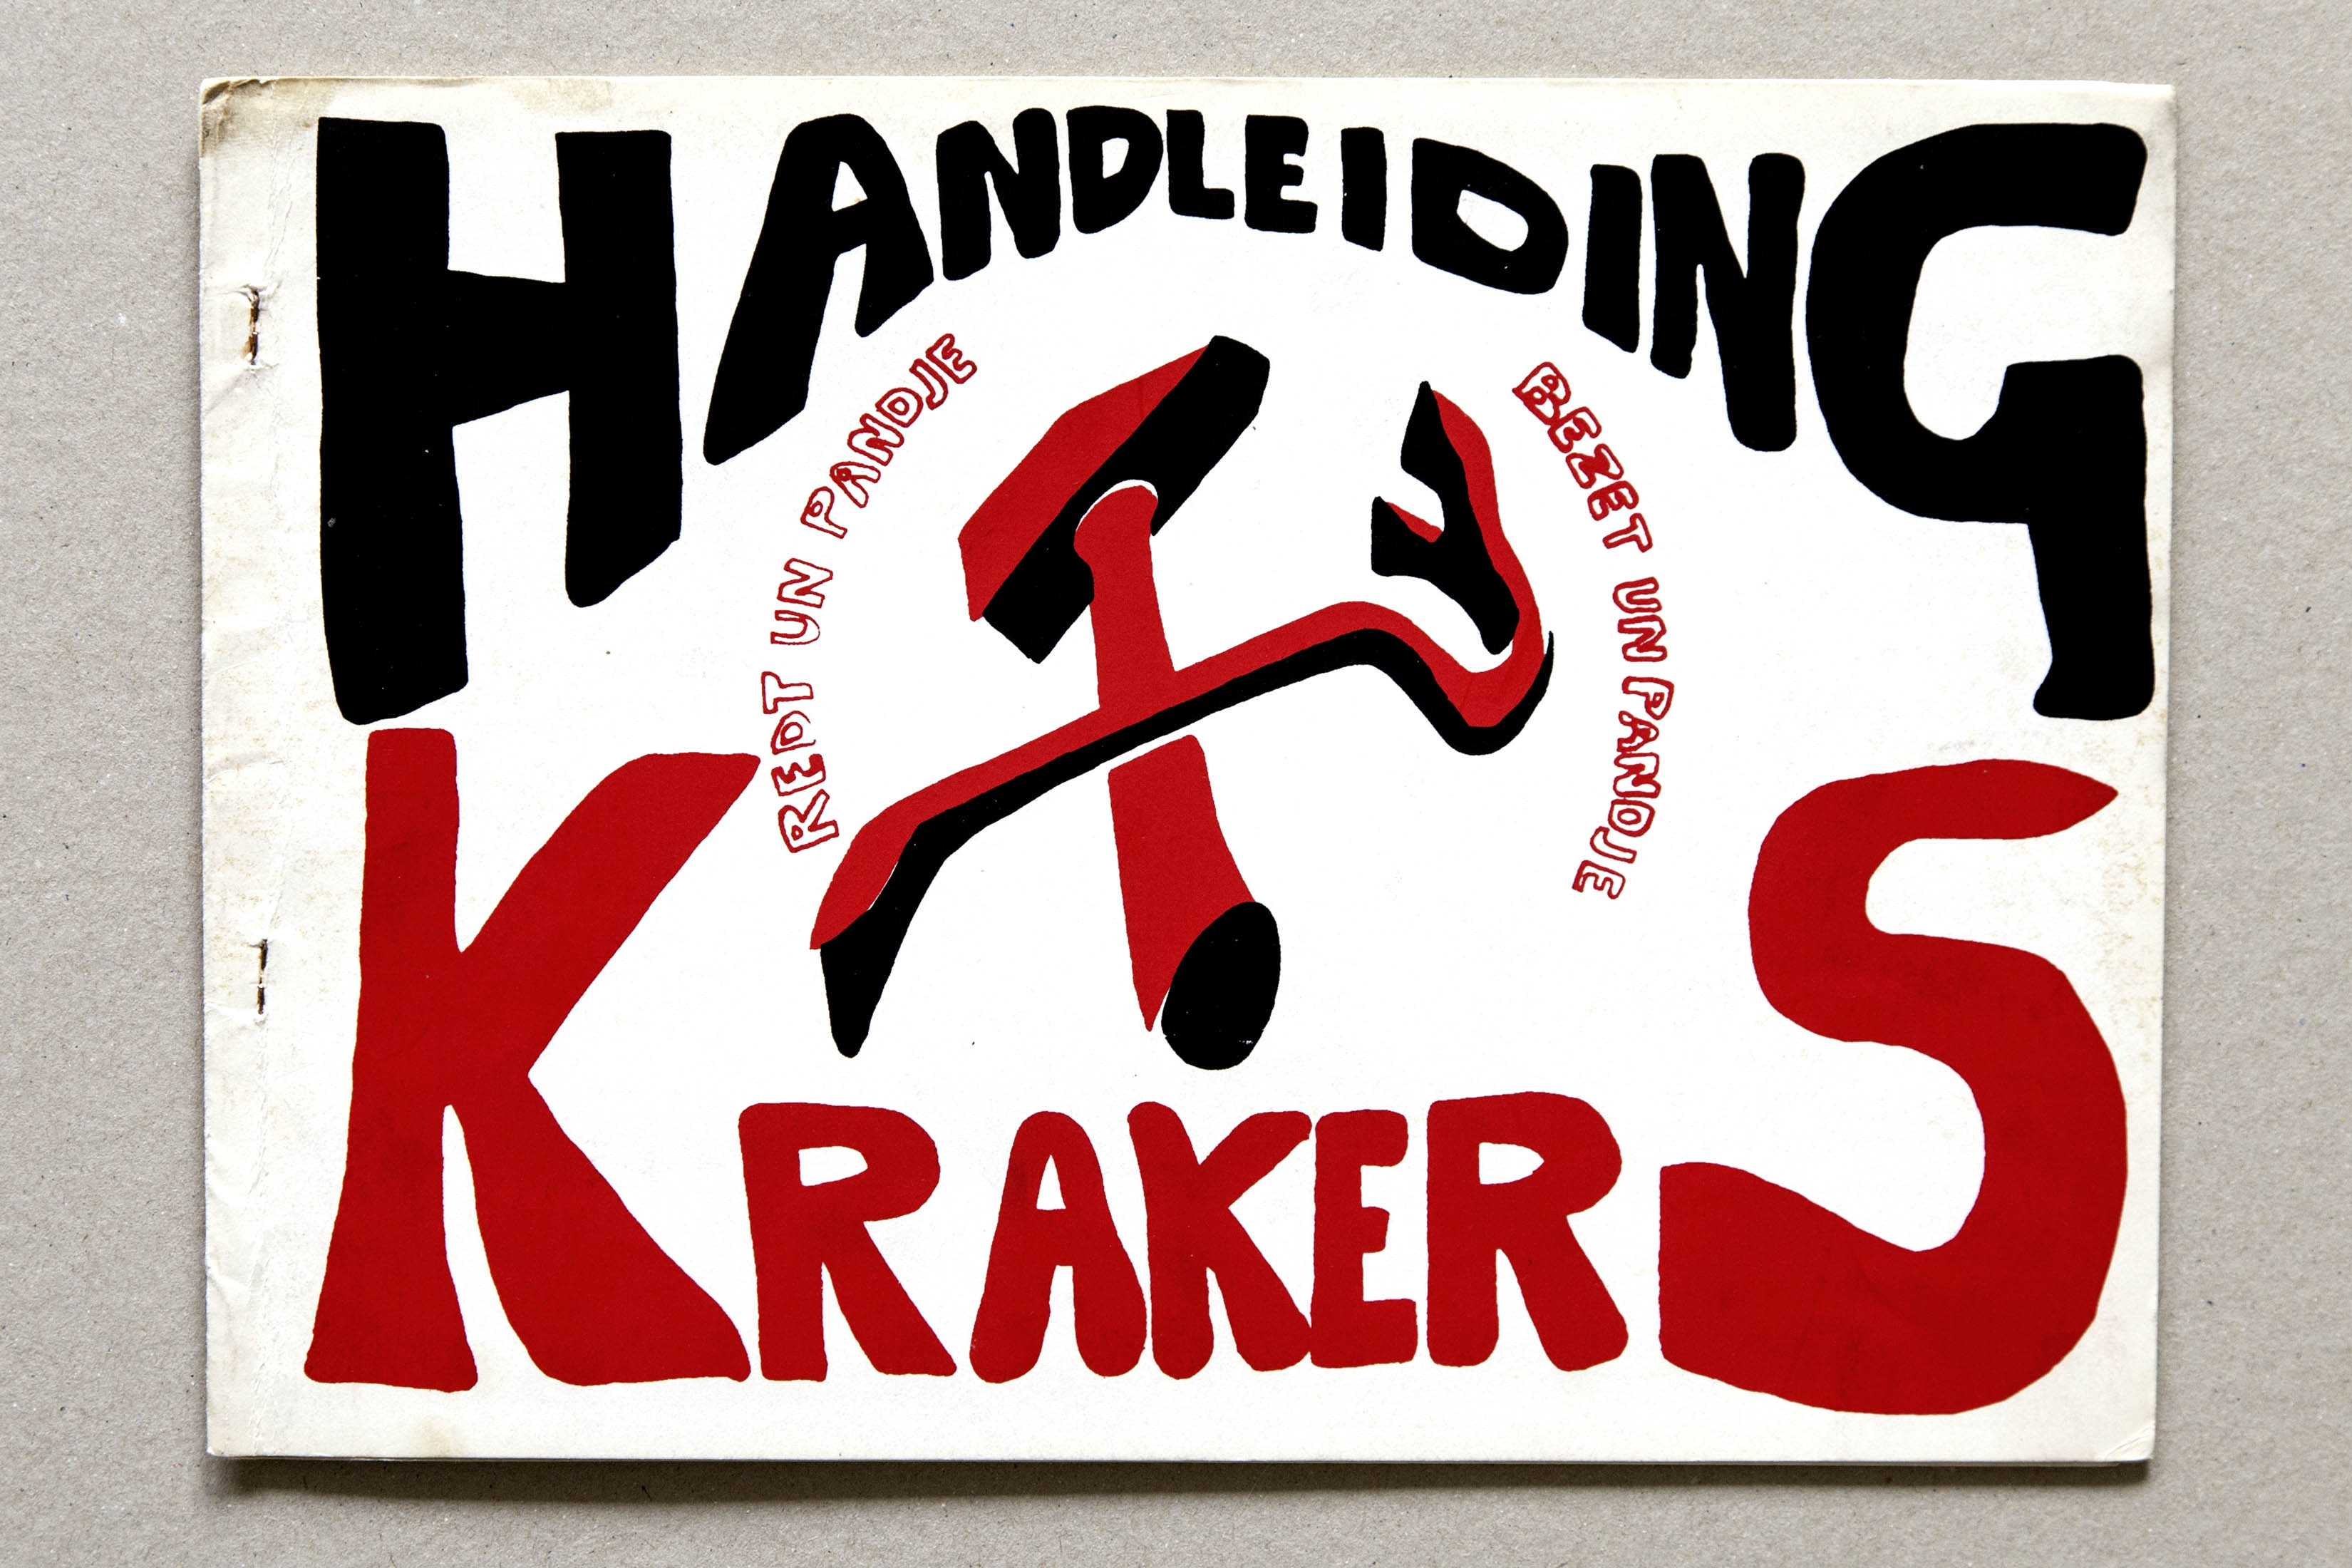 Smart_Fig01_Handleiding Krakers_01b